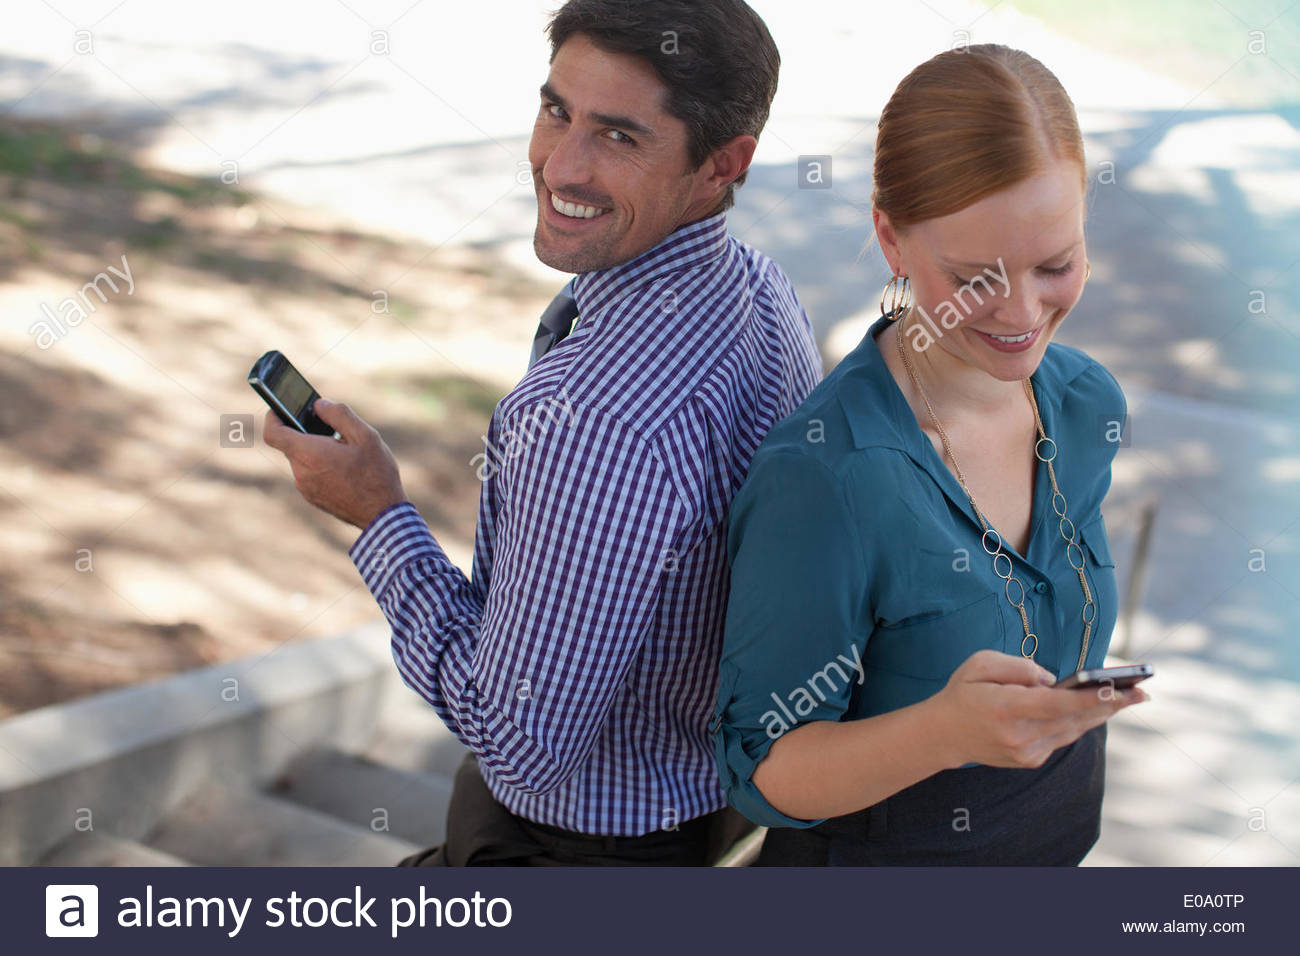 Business people using cell phones outdoors - Stock Image